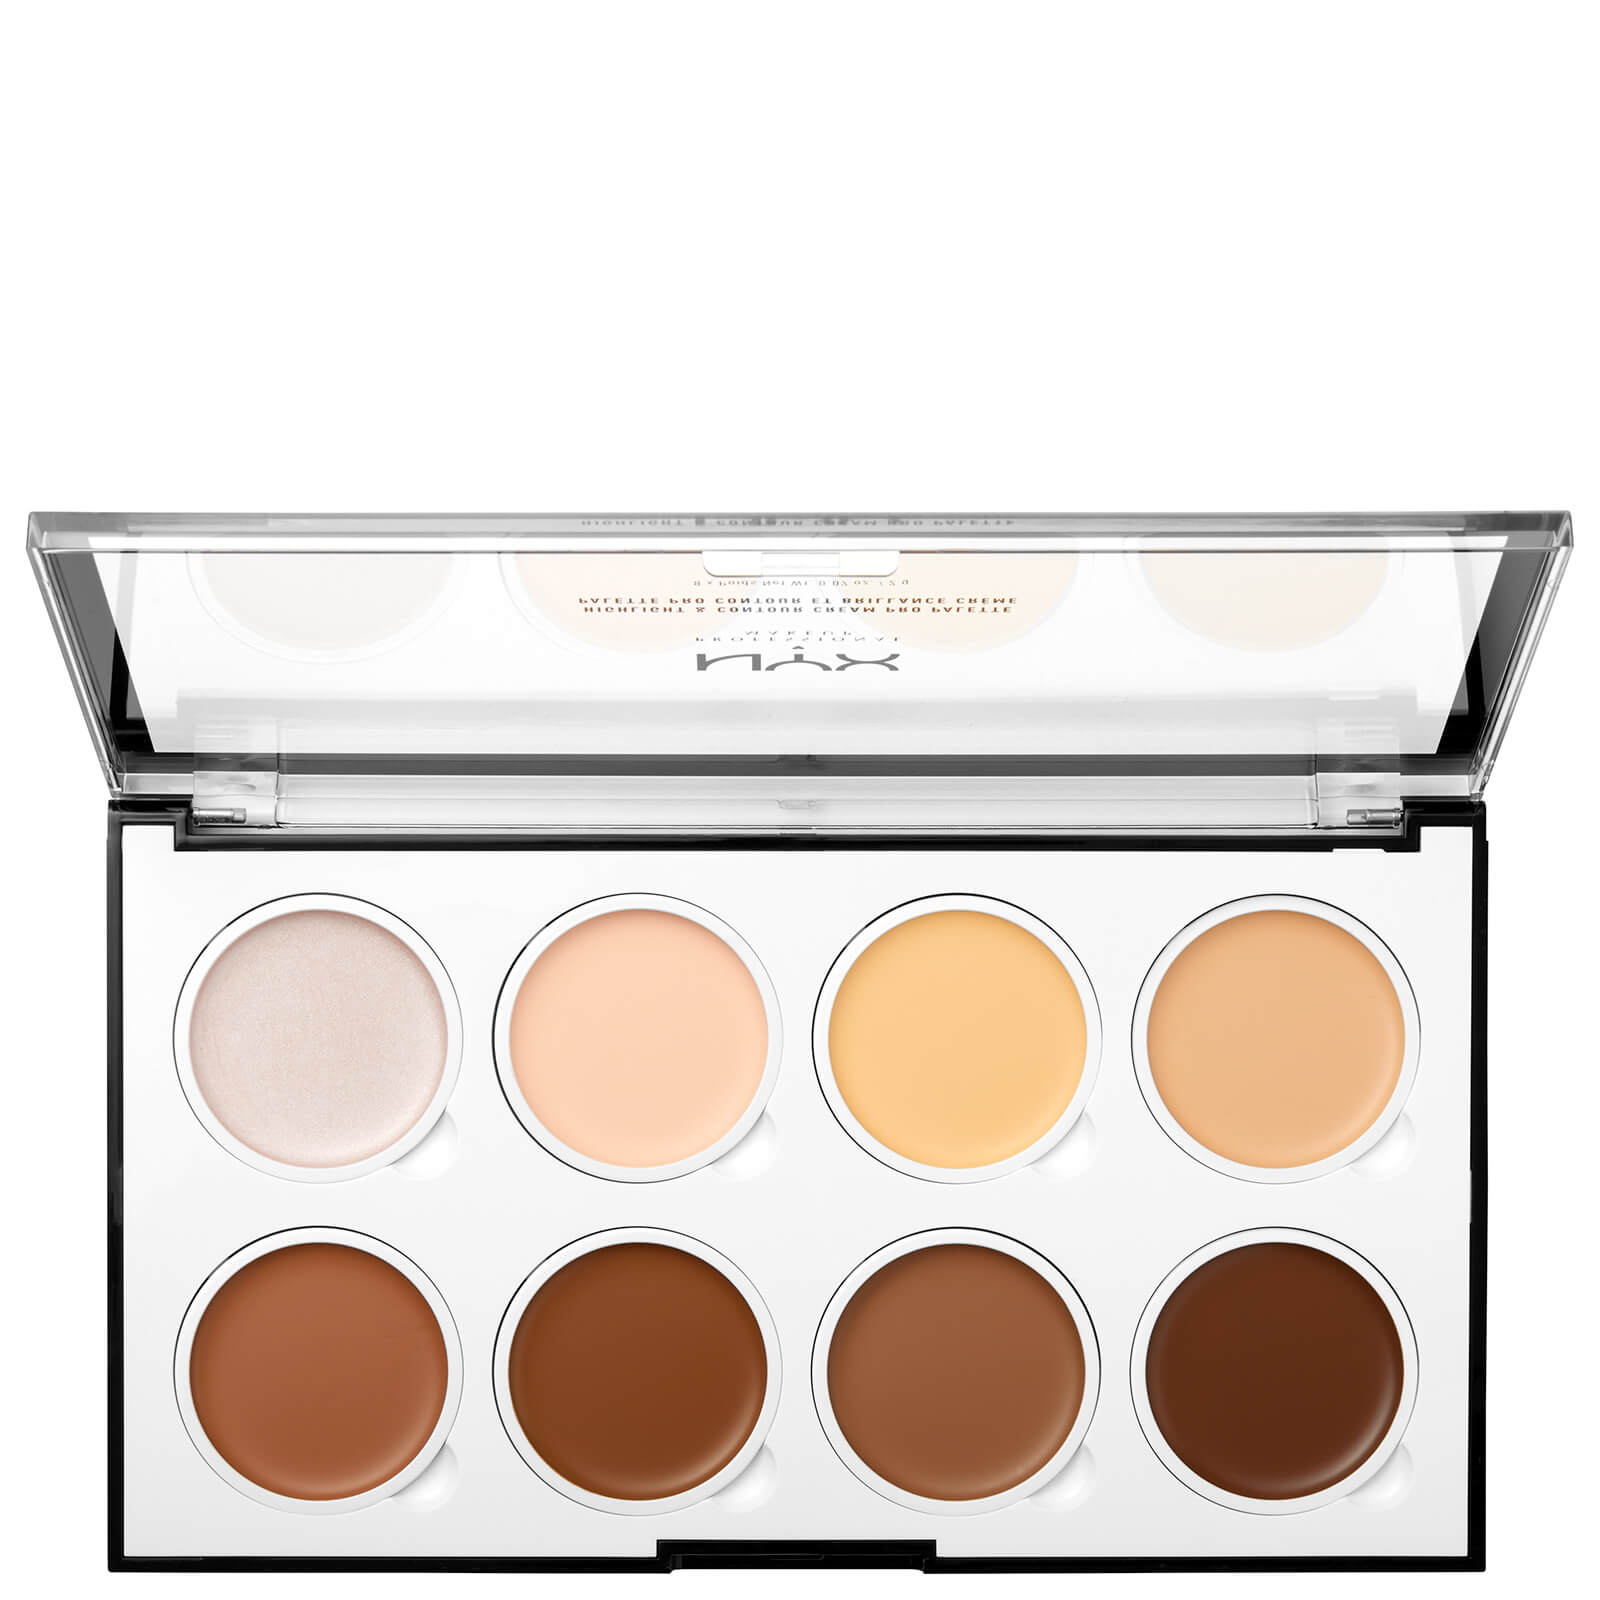 NYX Professional Makeup Highlight & Contour Cream Pro Palette | Free Shipping | Lookfantastic